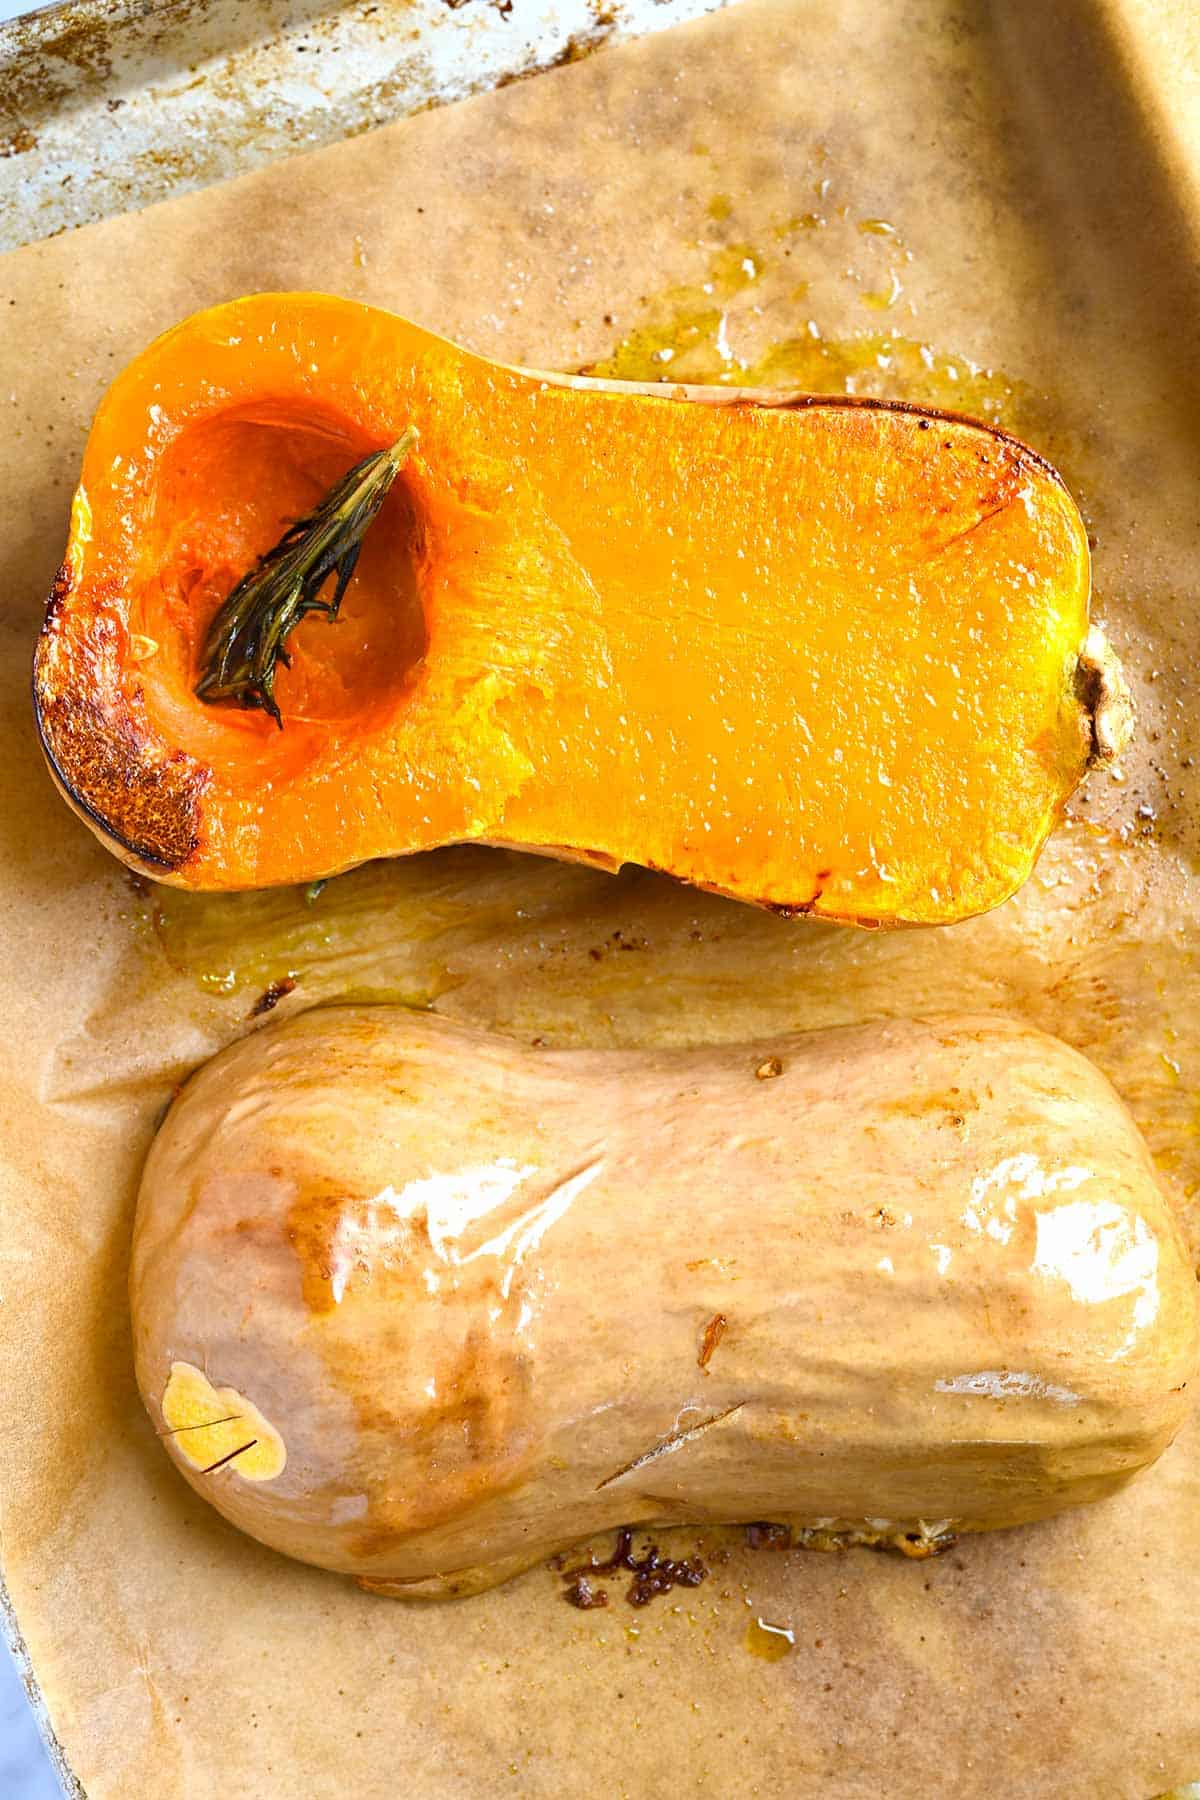 For the best soup, roast the butternut squash first.